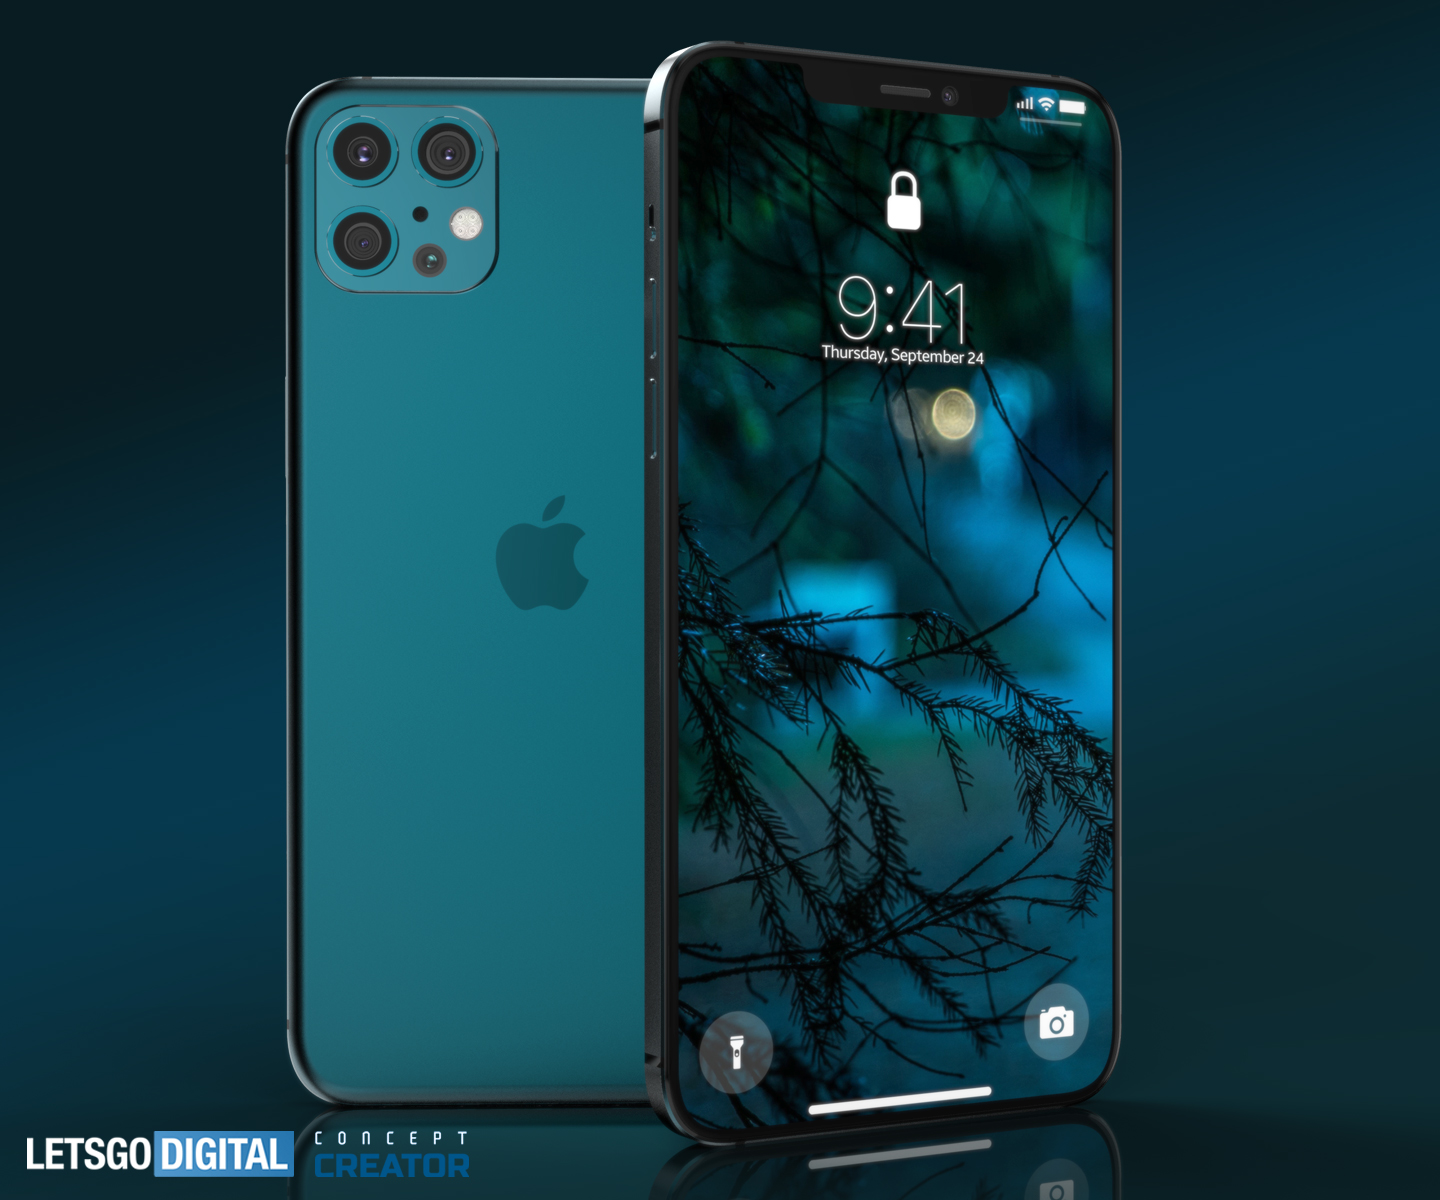 Iphone 12 Series Includes An Iphone Mini And 5g Support Letsgodigital